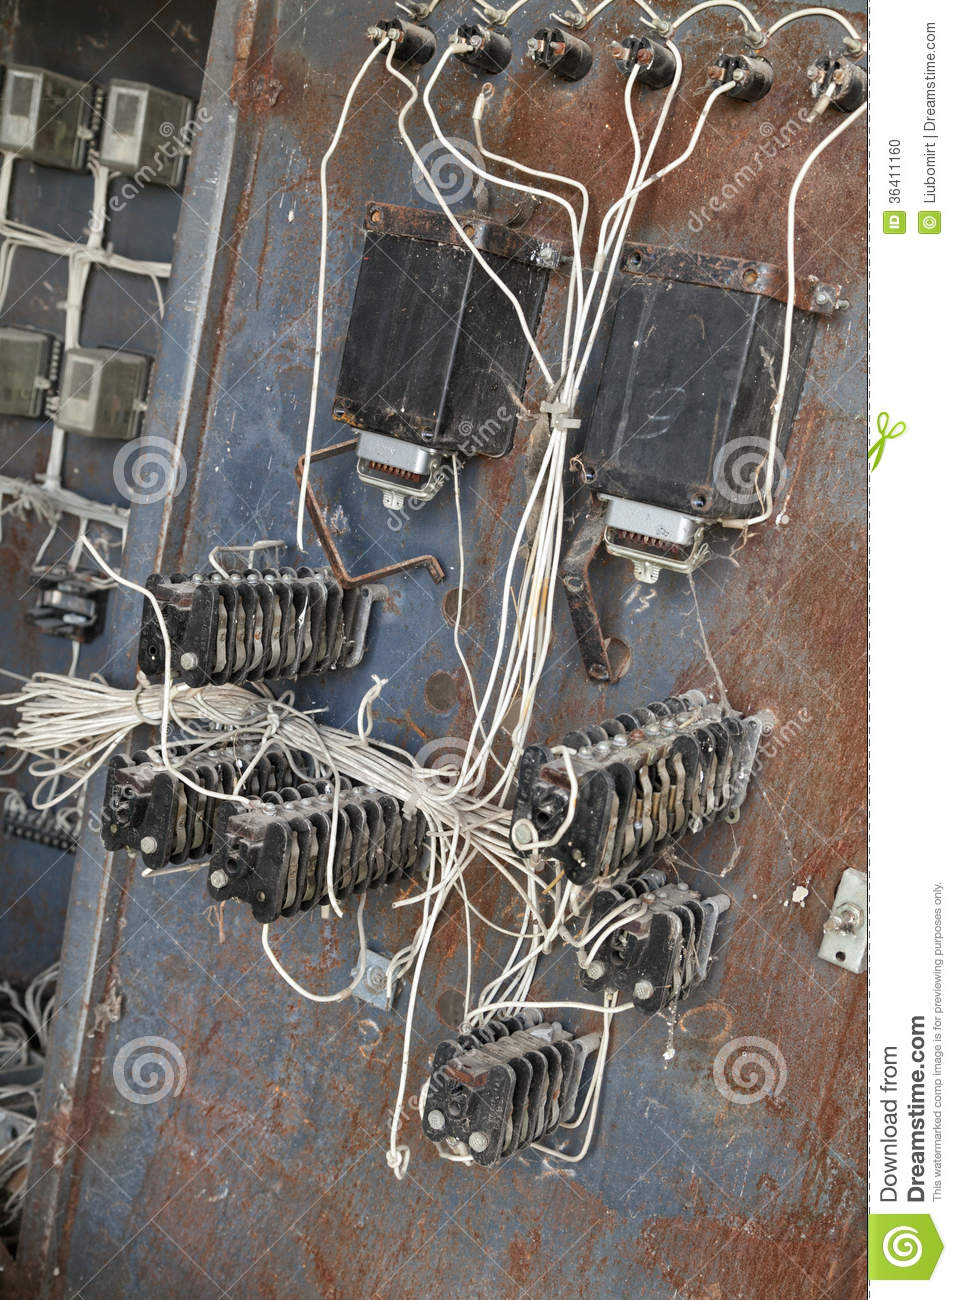 Old electric transformer stock photo. Image of electrical - 36411160